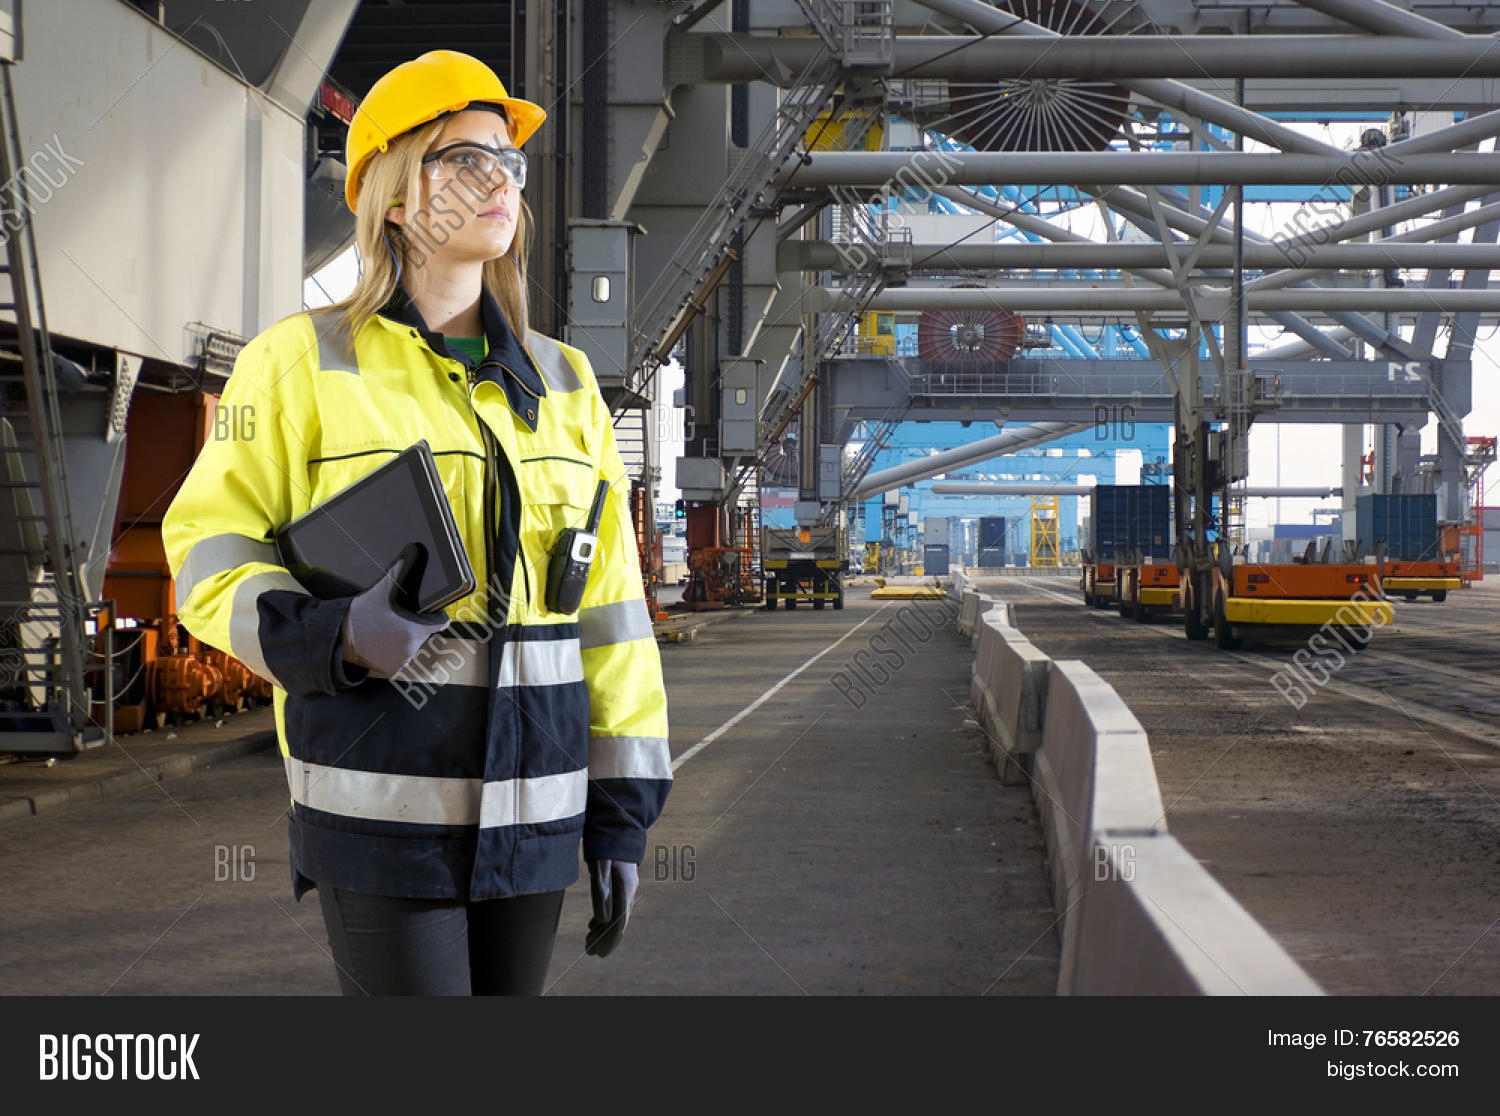 activity,assessing,assessment,automation,checking,coat,computer,construction,container,control,cranes,customs,derricks,dock,docker,economy,electronics,employment,environment,export,female,glasses,global,gloves,harbor,hard,hat,hr,human,import,industrial,industry,inspector,job,masculine,port,pretty,reflective,resources,risk,risk assessment,safety,safety glasses,steel,stern,structure,tablet,technology,tough,trolleys,woman,worker